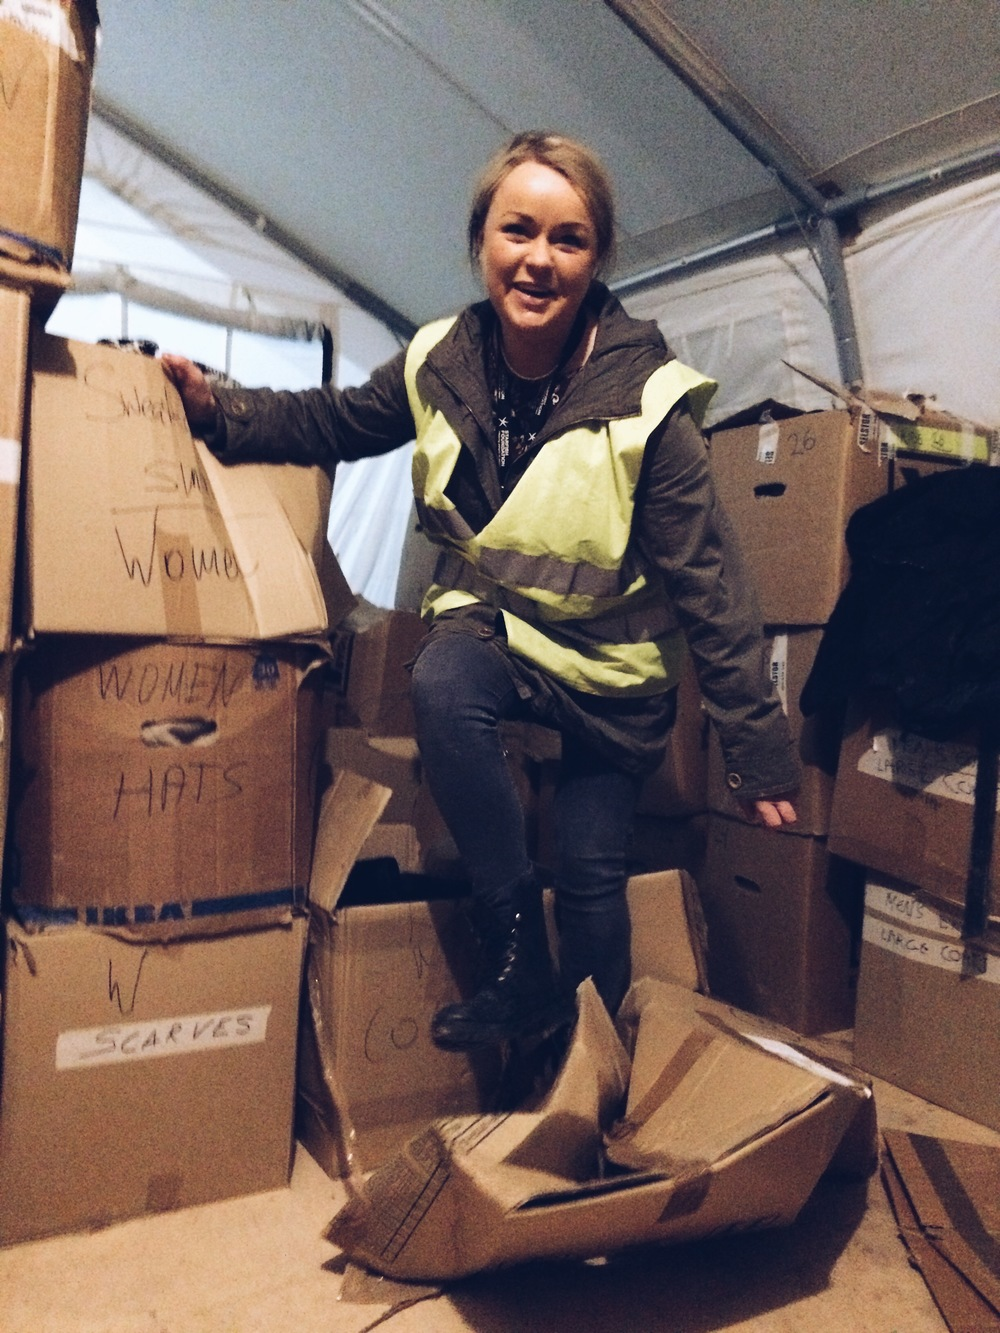 Jenny, a volunteer since October, taking revenge on the empty boxes of the men's clothing tent, IRC Camp.